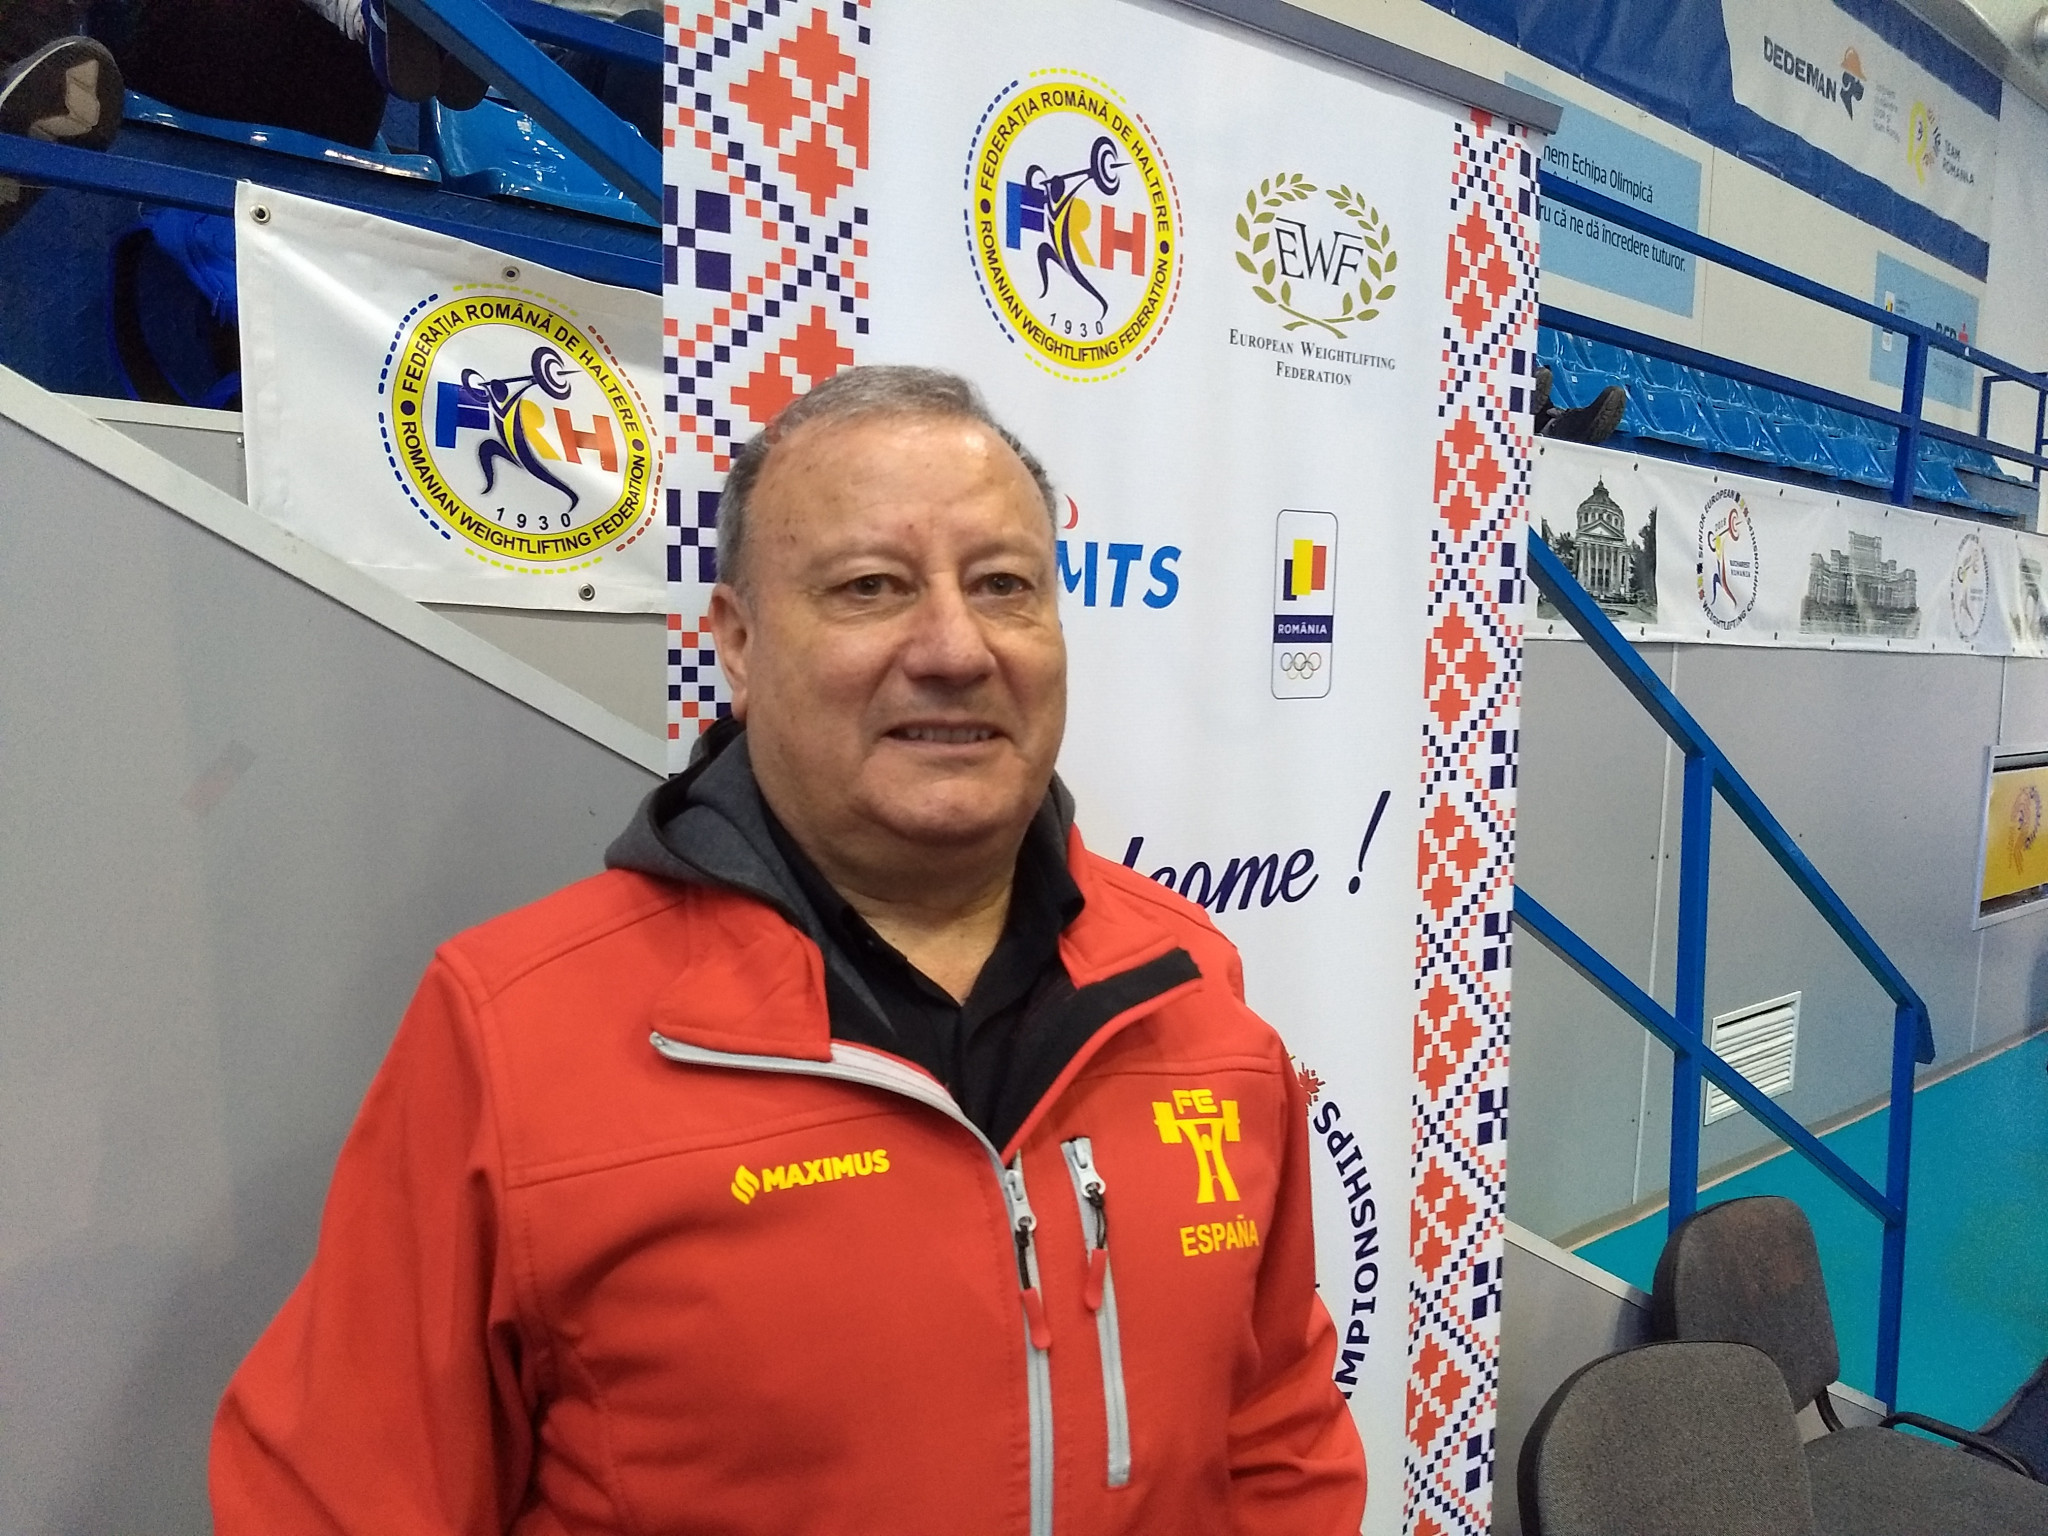 Constantino Iglesias, President of the Spanish Weightlifting Federation, is calling for help so that Kosovo can compete at the European Junior and Under-23 Championships in La Coruna in October ©Brian Oliver/ITG